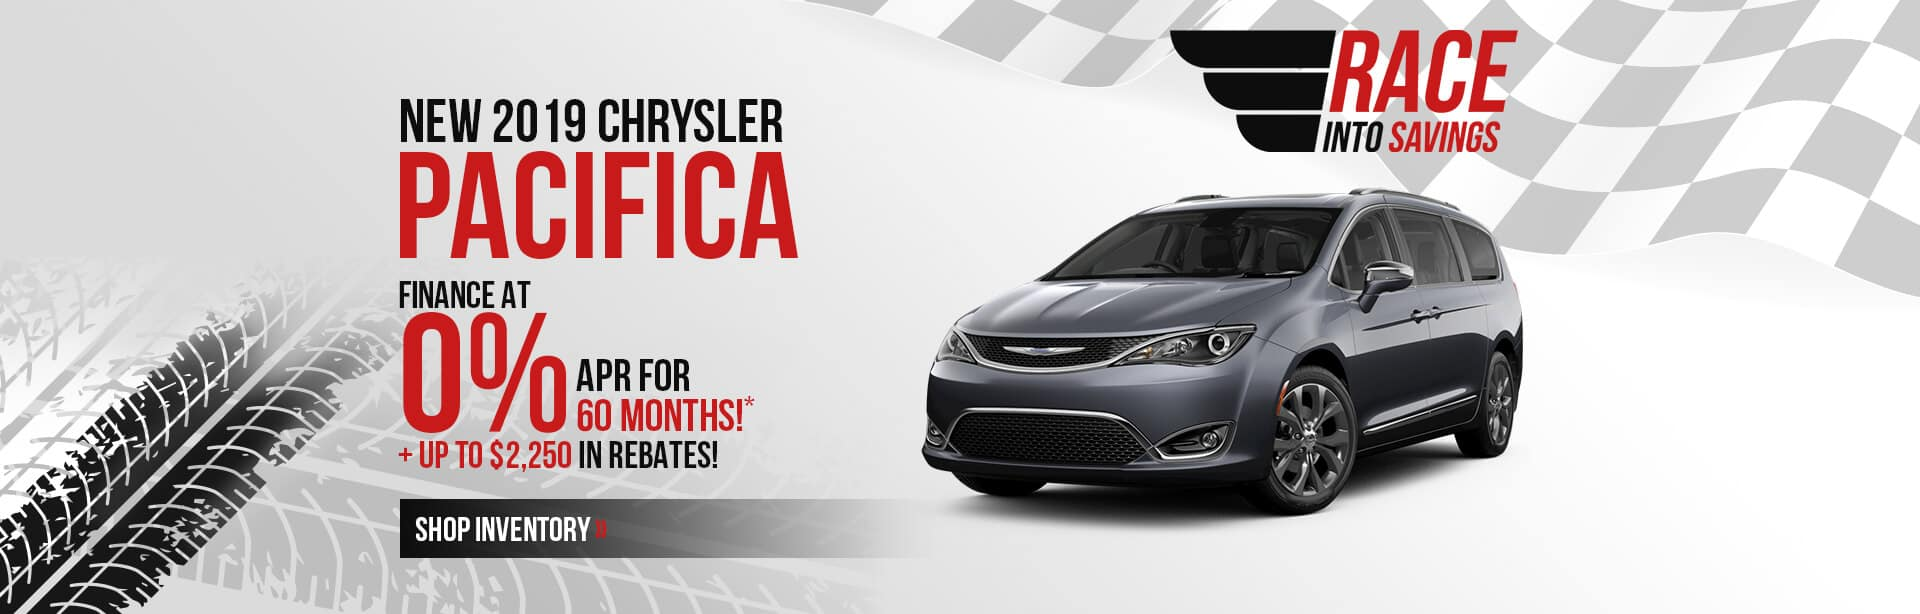 Finance a 2019 Chrysler Pacifica at 0% for 60 months plus rebates near Greencastle, IN.